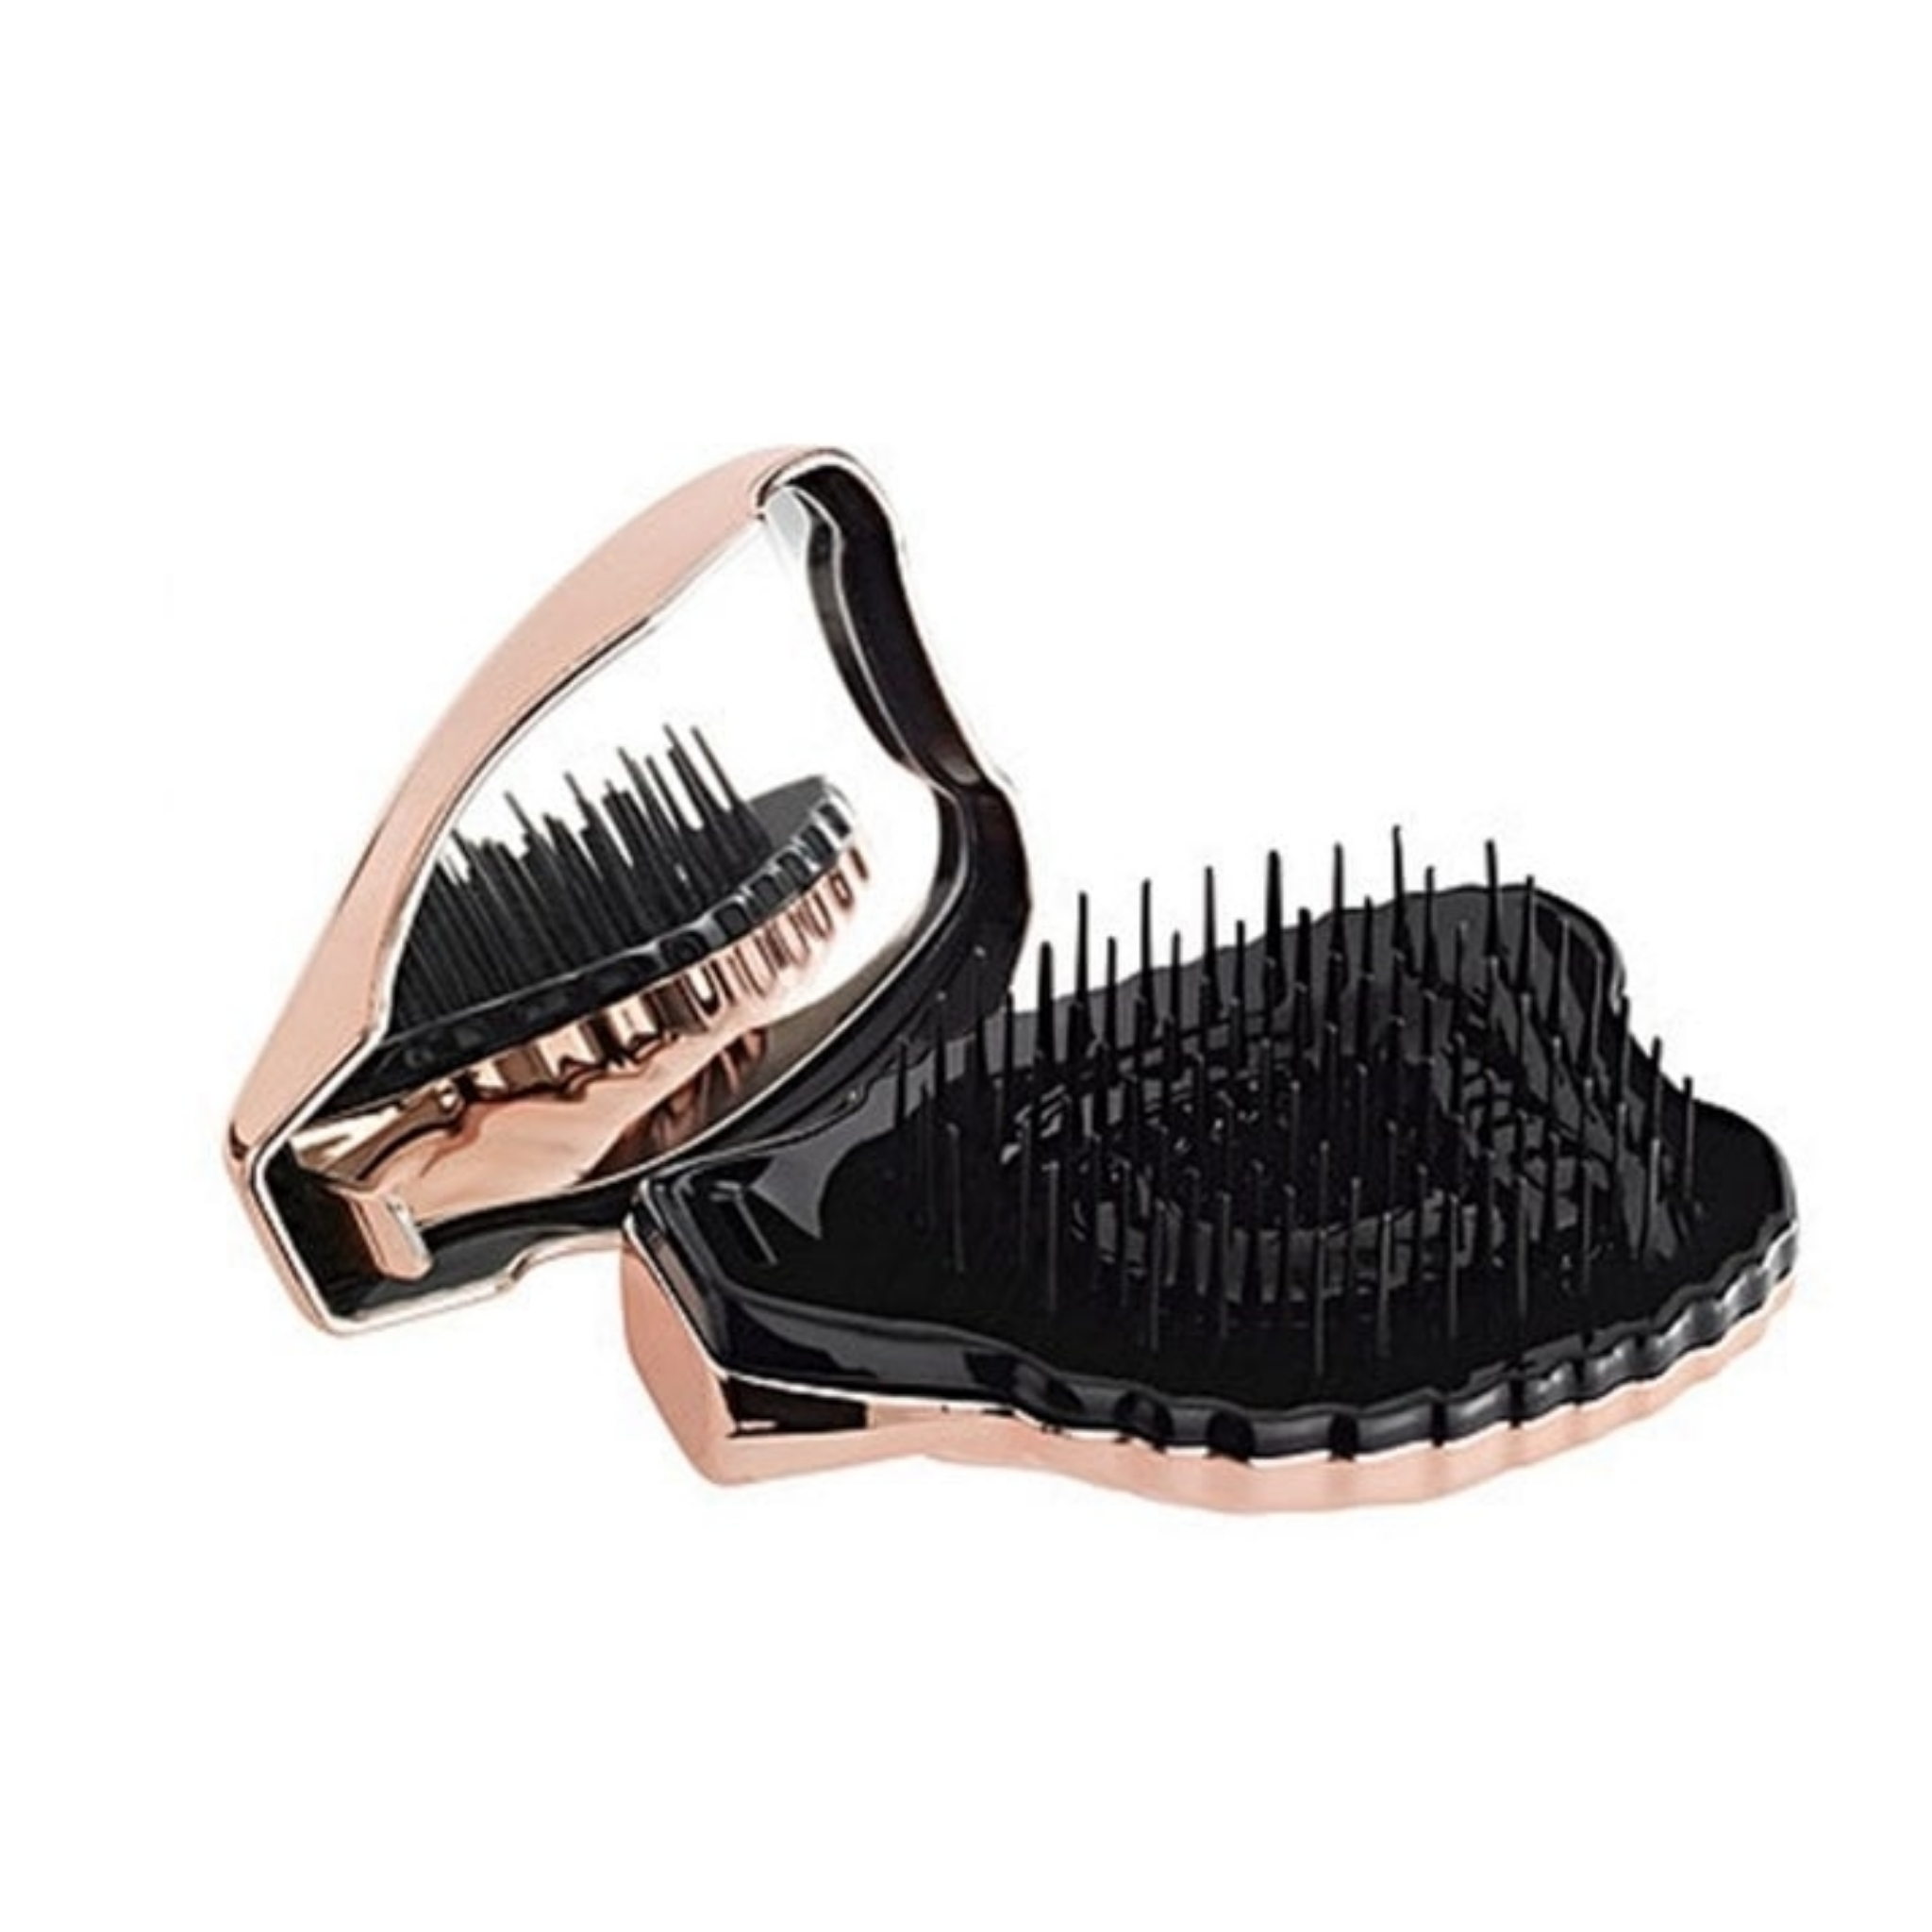 PRO COMPACT DETANGLING HAIR BRUSH | ROSE GOLD